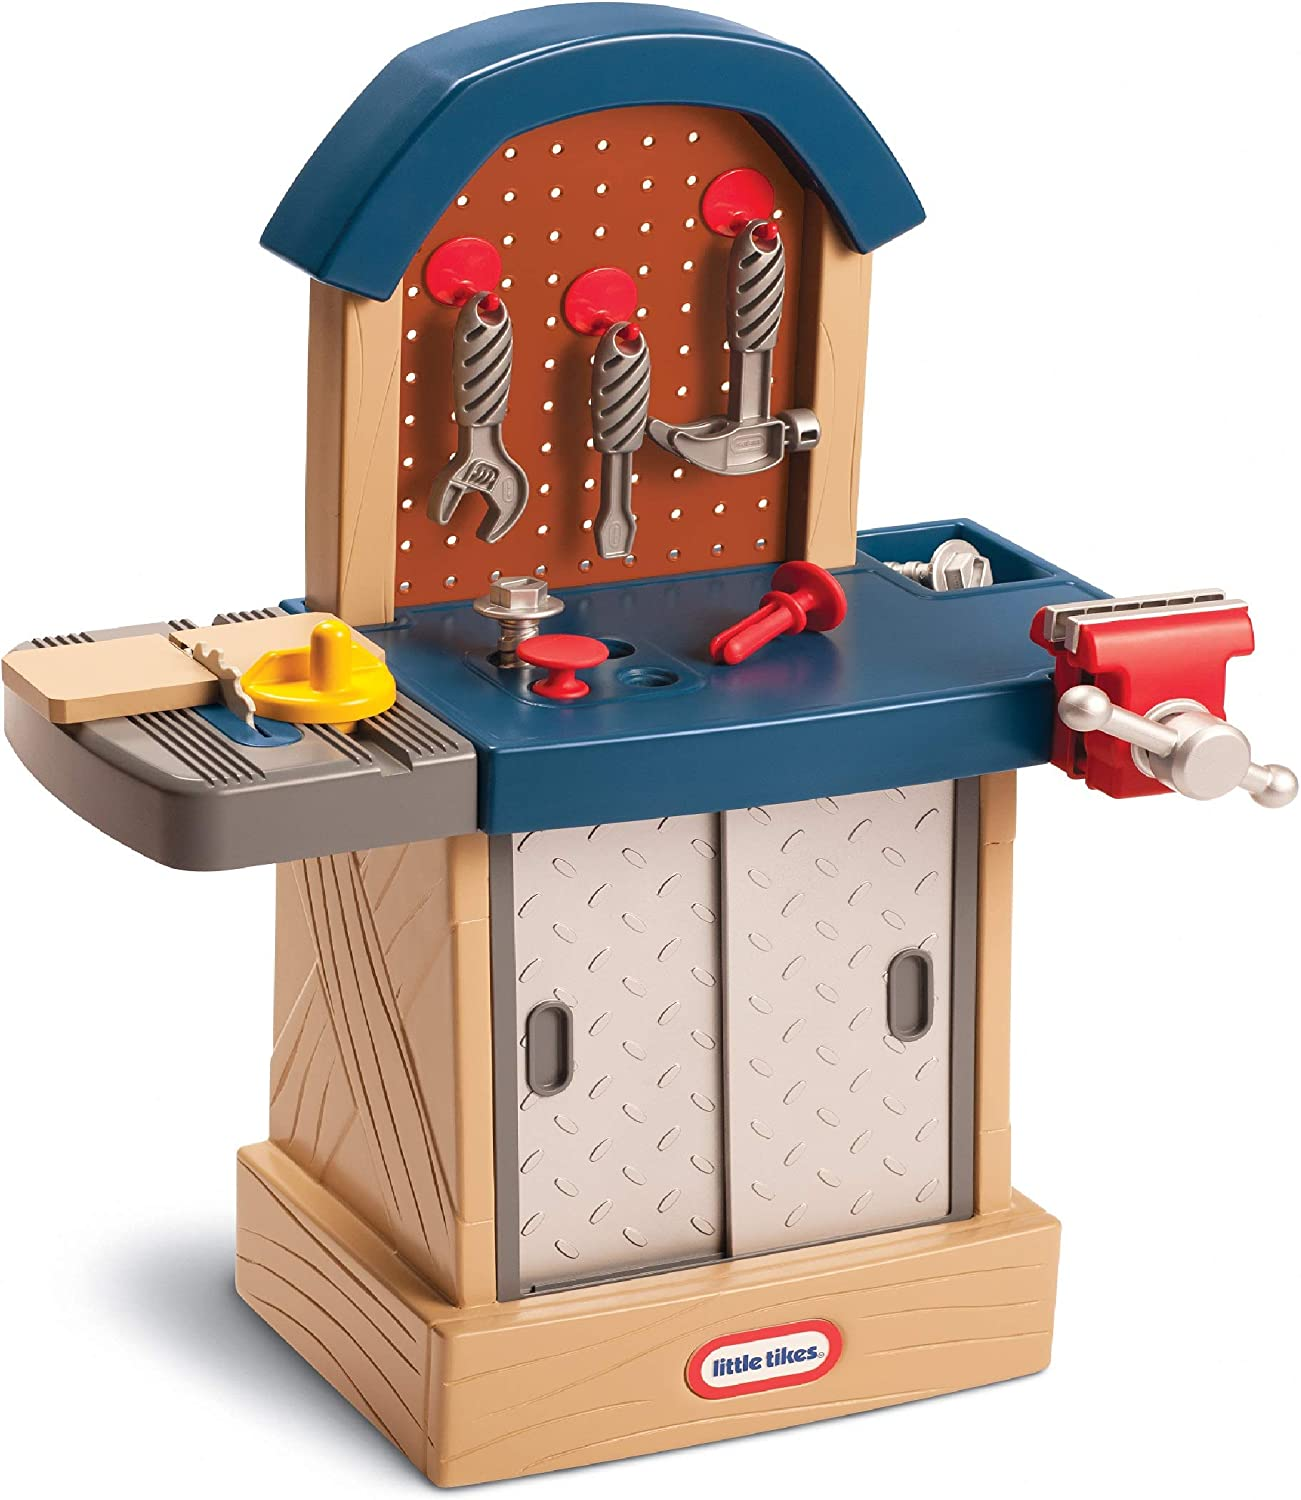 Top 8 Best Workbenches For Kids (2020 Reviews & Buying Guide) 2